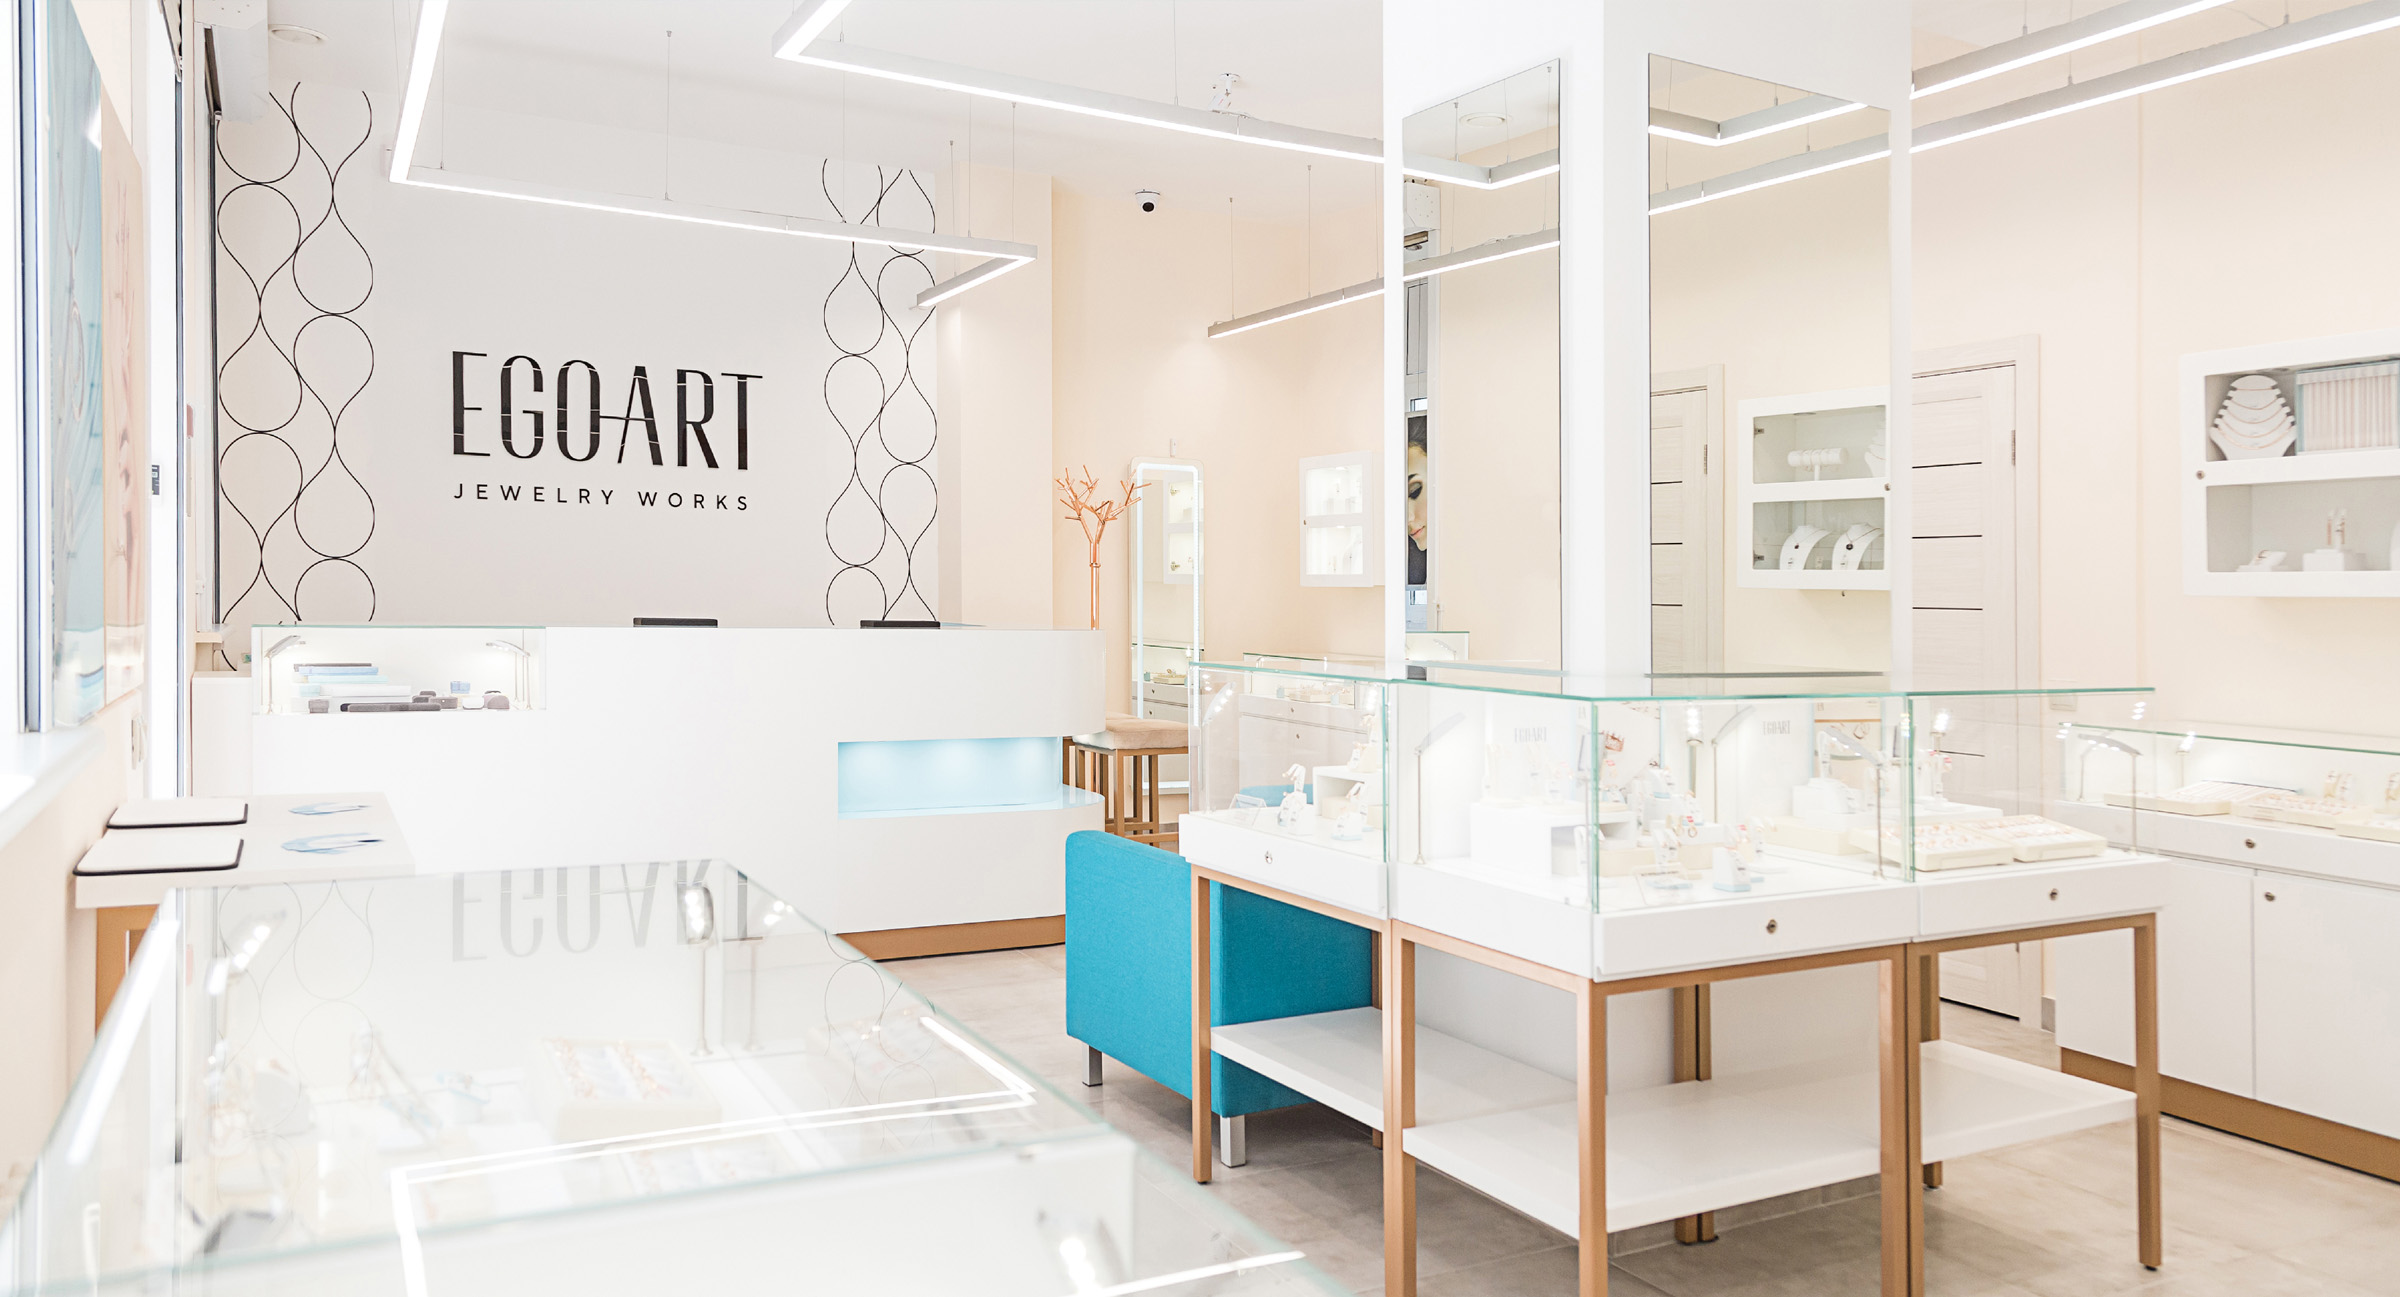 Rebranding of Chain of Jewelry Stores from Identity to Retail Concept